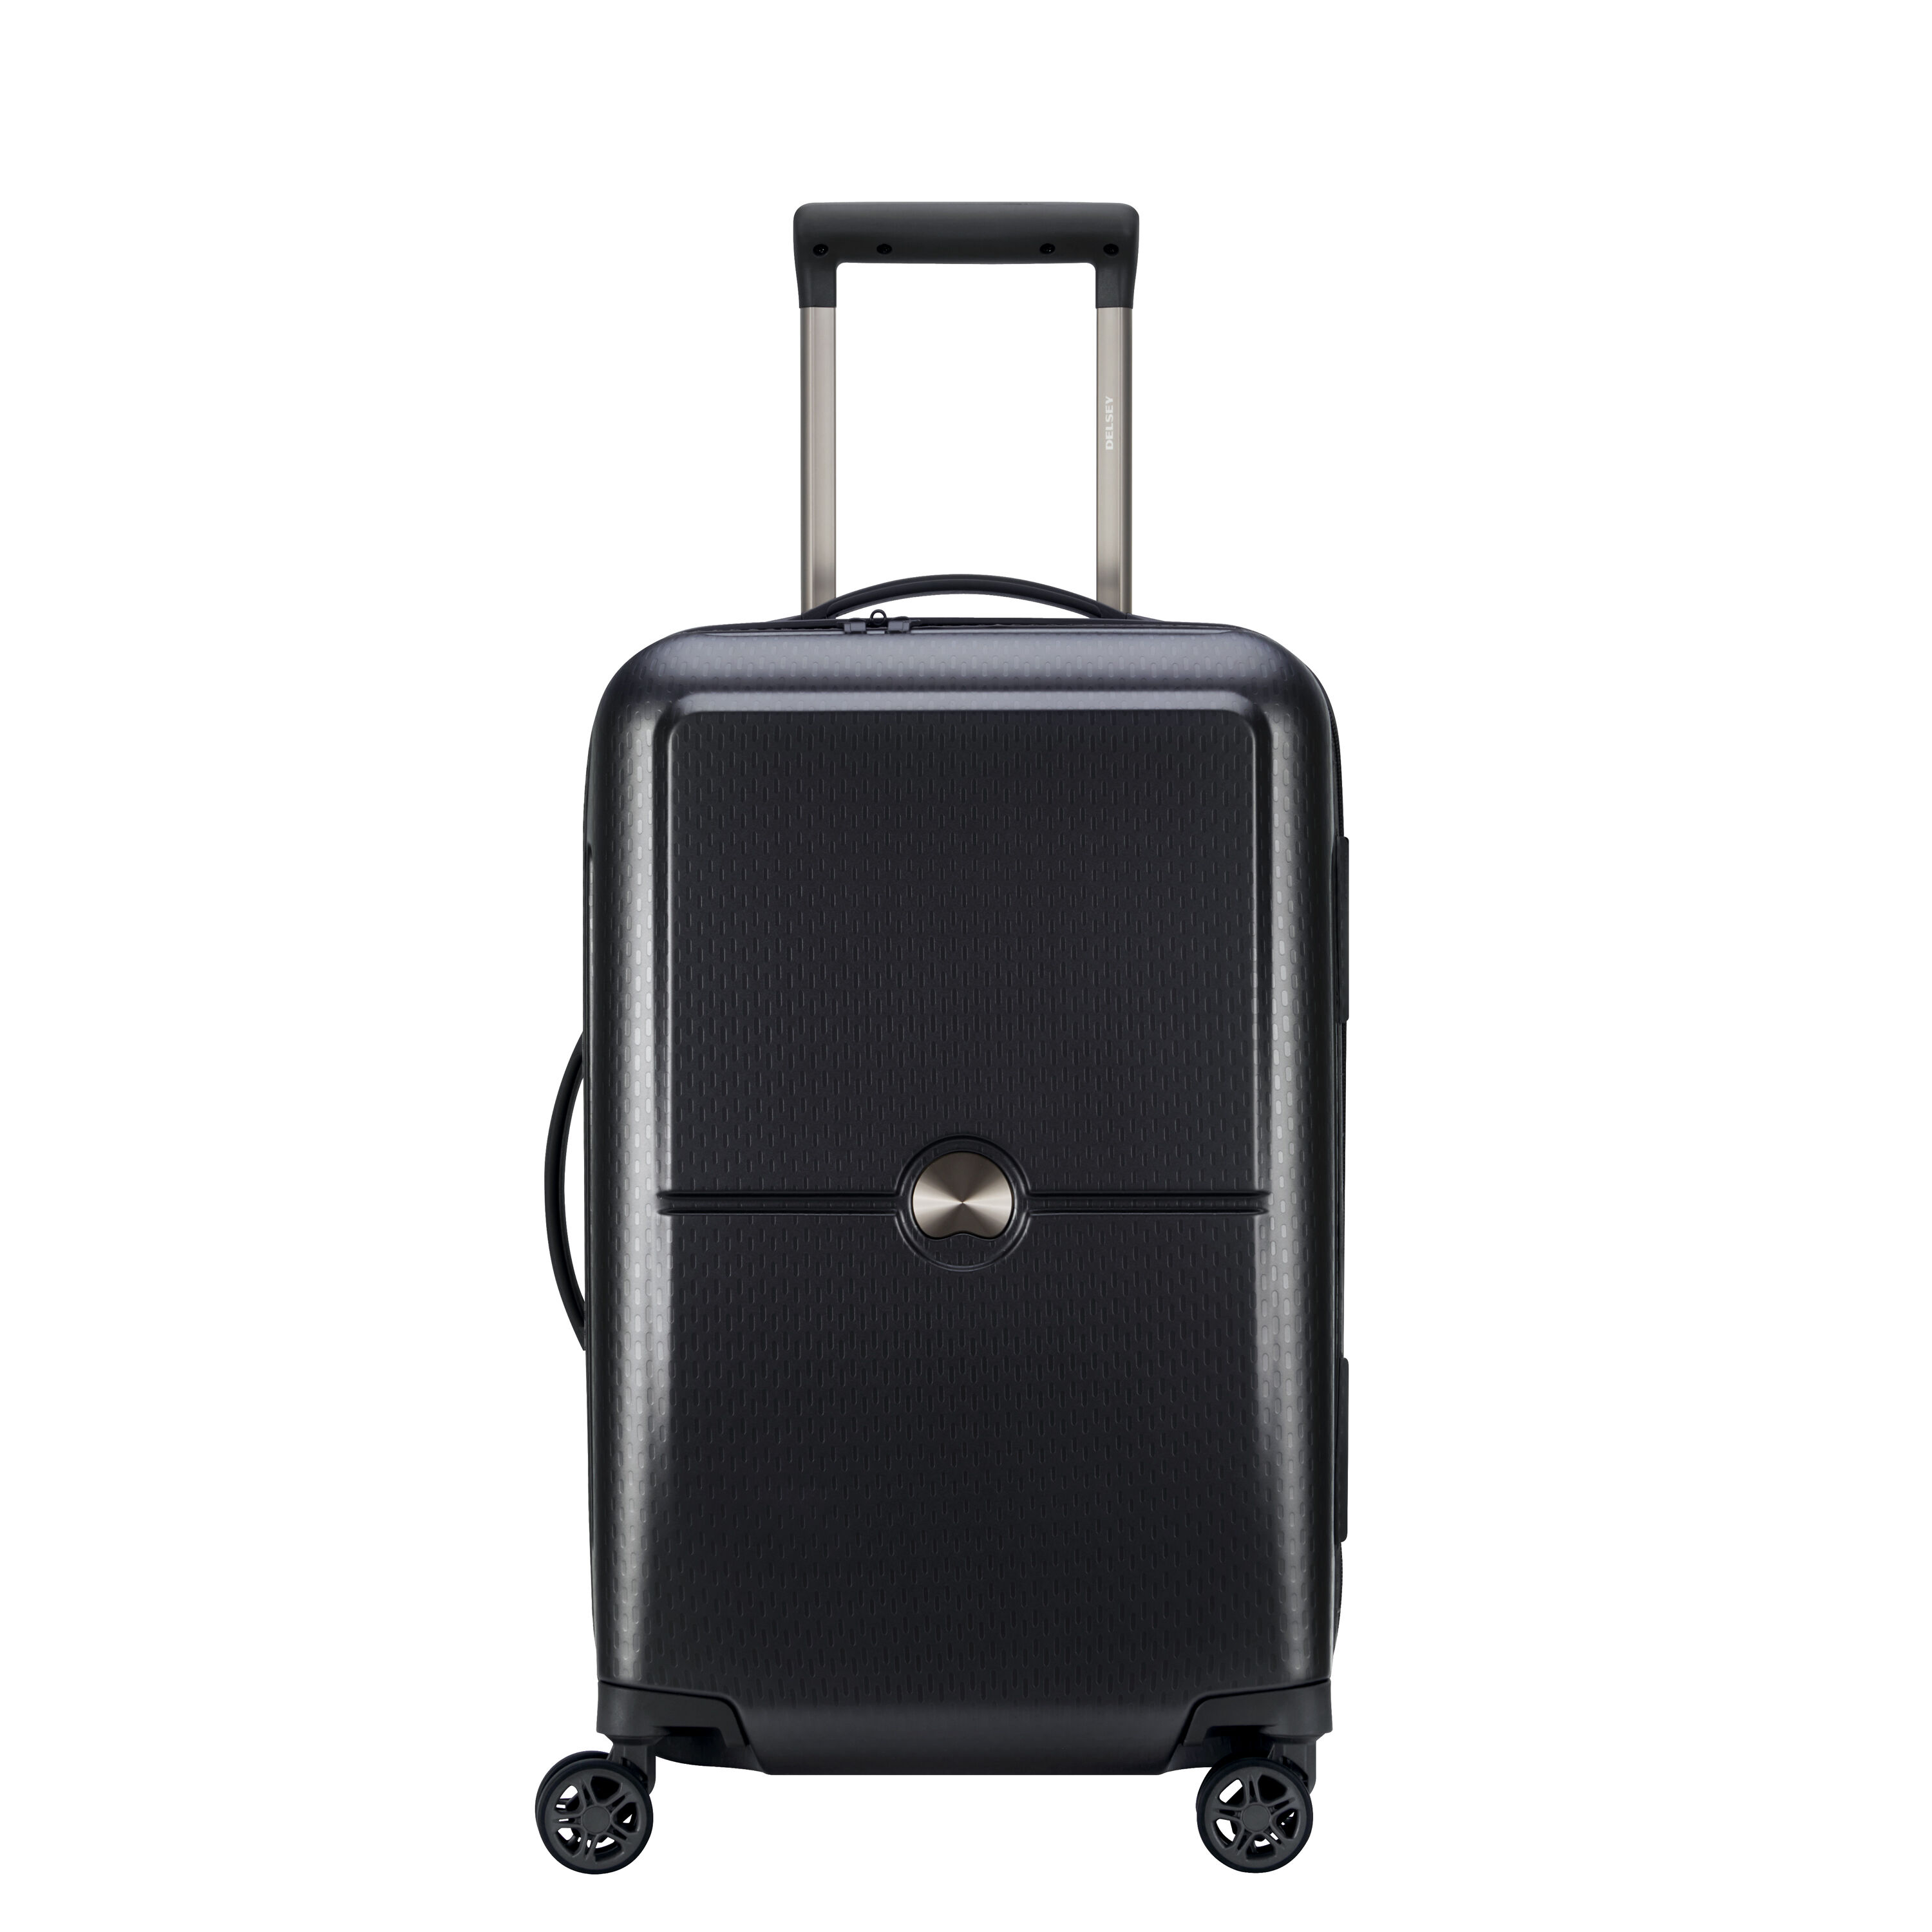 case trolley case polycarbonate case delsey rh delsey com Delsey Carry-On Luggage Delsey Bags